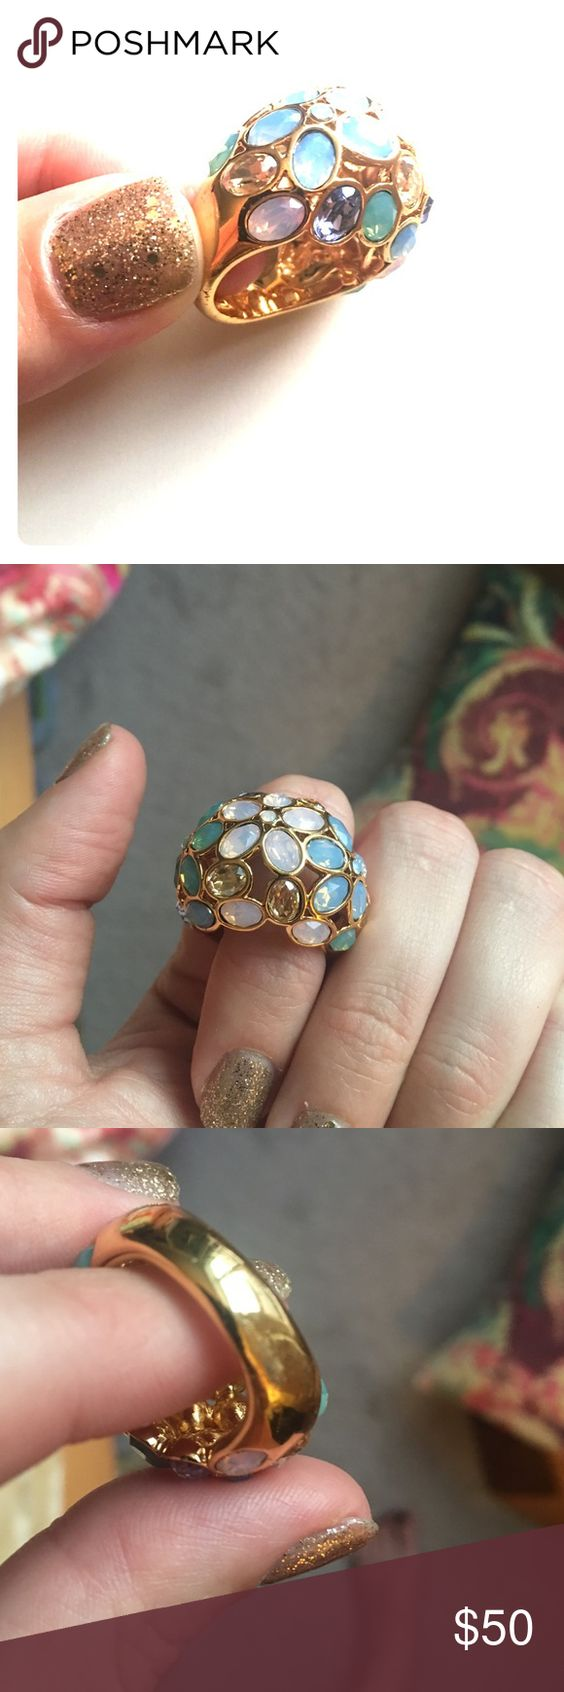 Coach ring ❤️ Beautiful coach ring! Gold with different colors. Never worn. Only minor flaw is scratching on side of ring, but not noticeable when worn!! Offers considered :) Coach Jewelry Rings